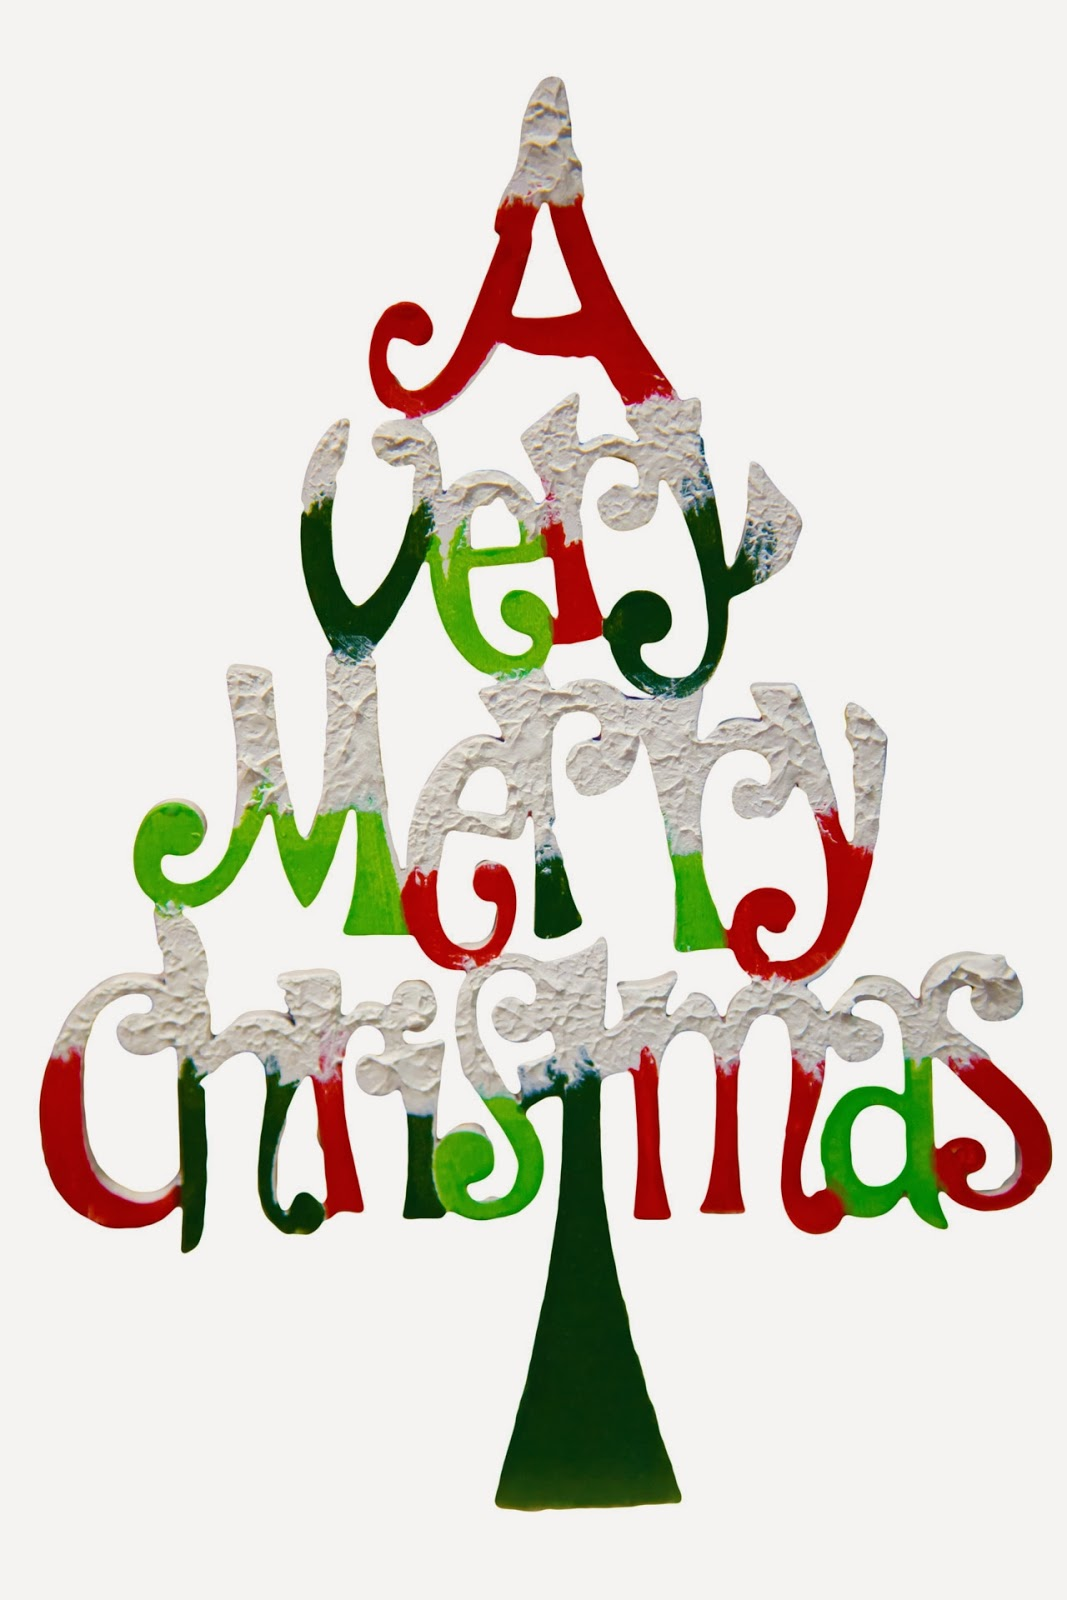 Top 20 Merry Christmas Images Omg The Best Merry